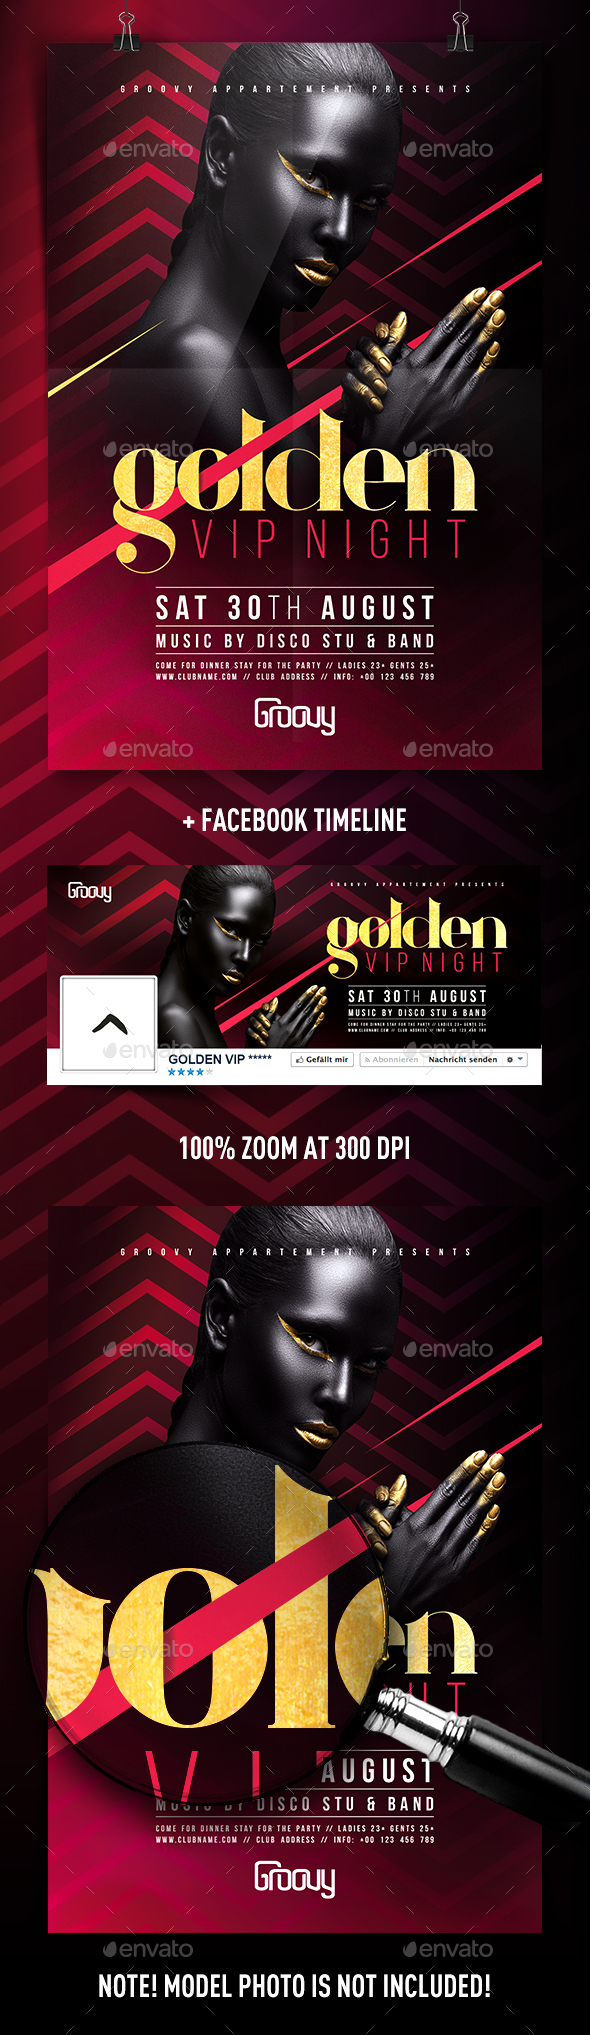 Golden VIP Night Flyer - Clubs & Parties Events